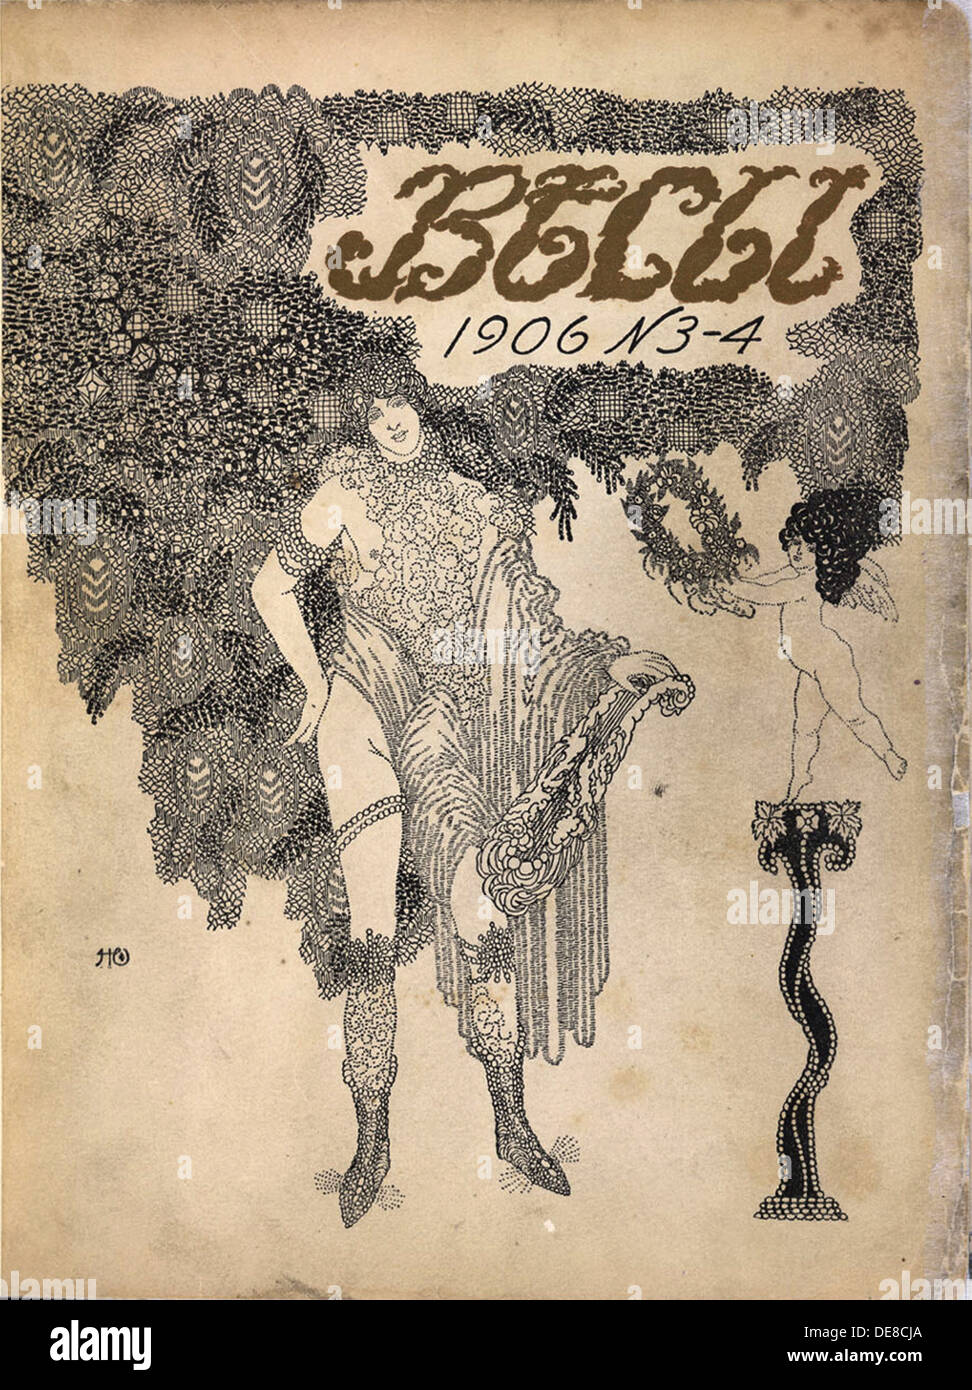 Cover of the Symbolist magazine Vesy (The Balance), 1906. Artist: Feofilaktov, Nikolai Petrovich (1878-1941) - Stock Image